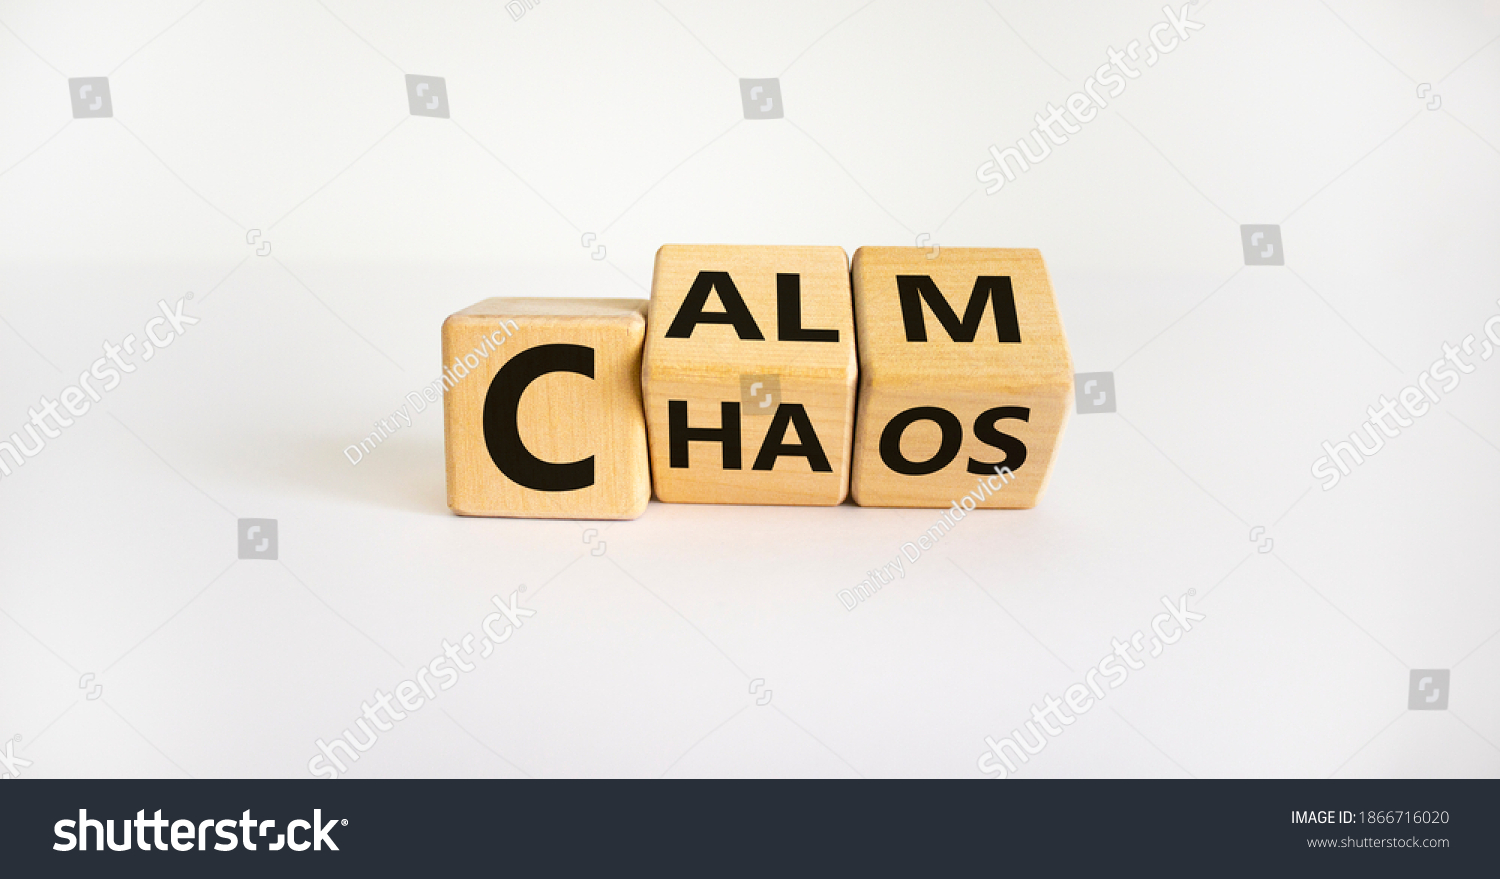 Stop chaos, time to calm. The words 'chaos' and 'calm' on wooden cubes. Beautiful white background, copy space. Business and chaos or calm concept. #1866716020